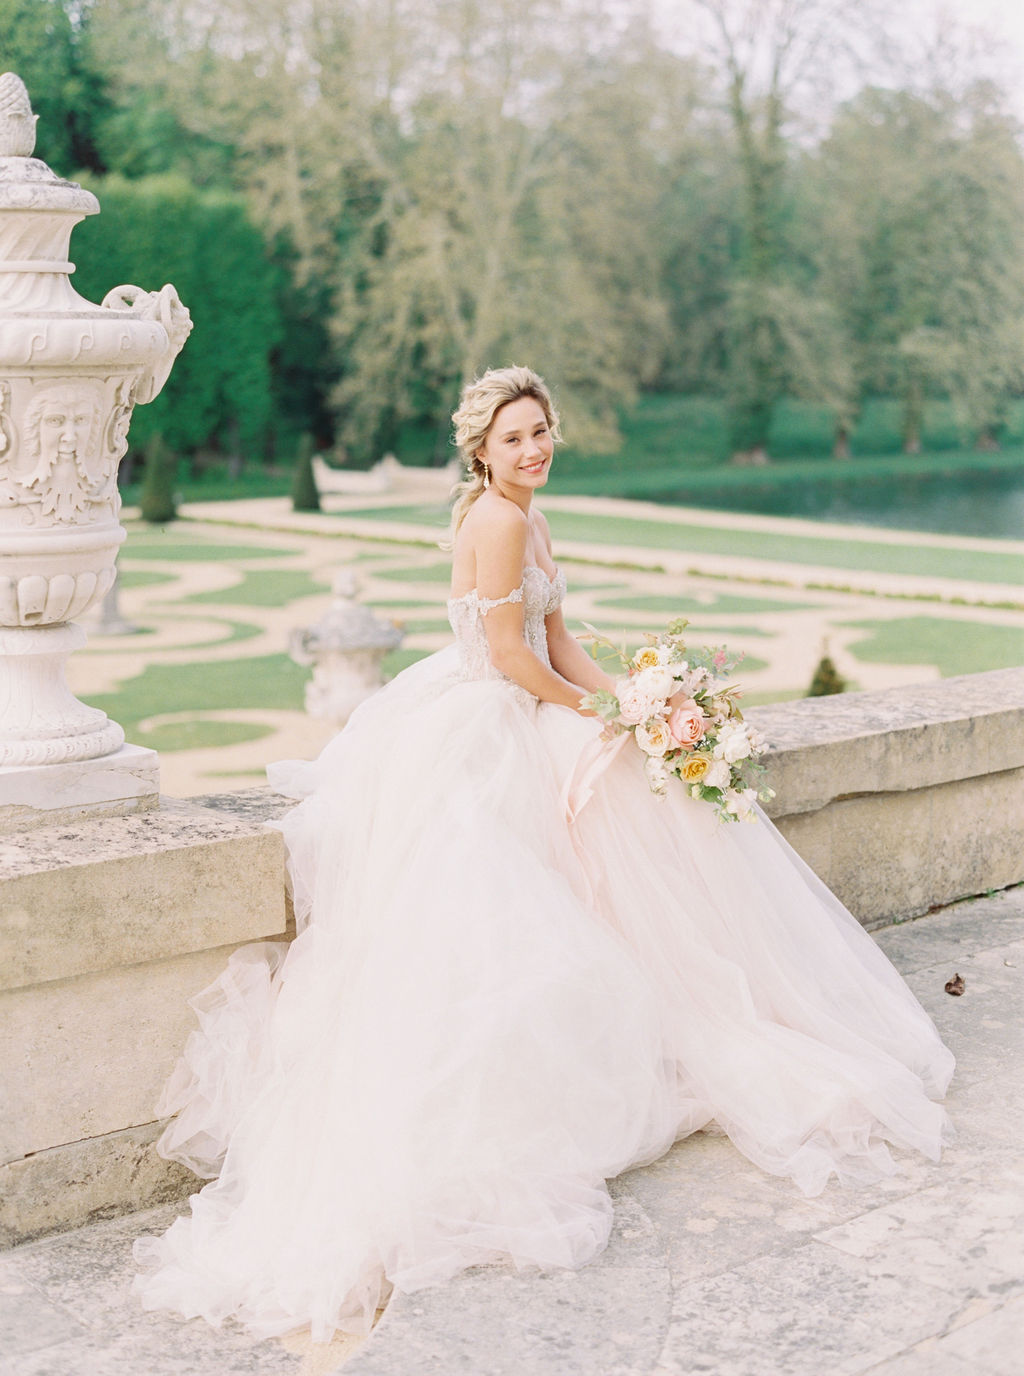 travellur_photoshoot_duchesse_de_villette_chateau_gardens_model_luxury_wedding.jpg